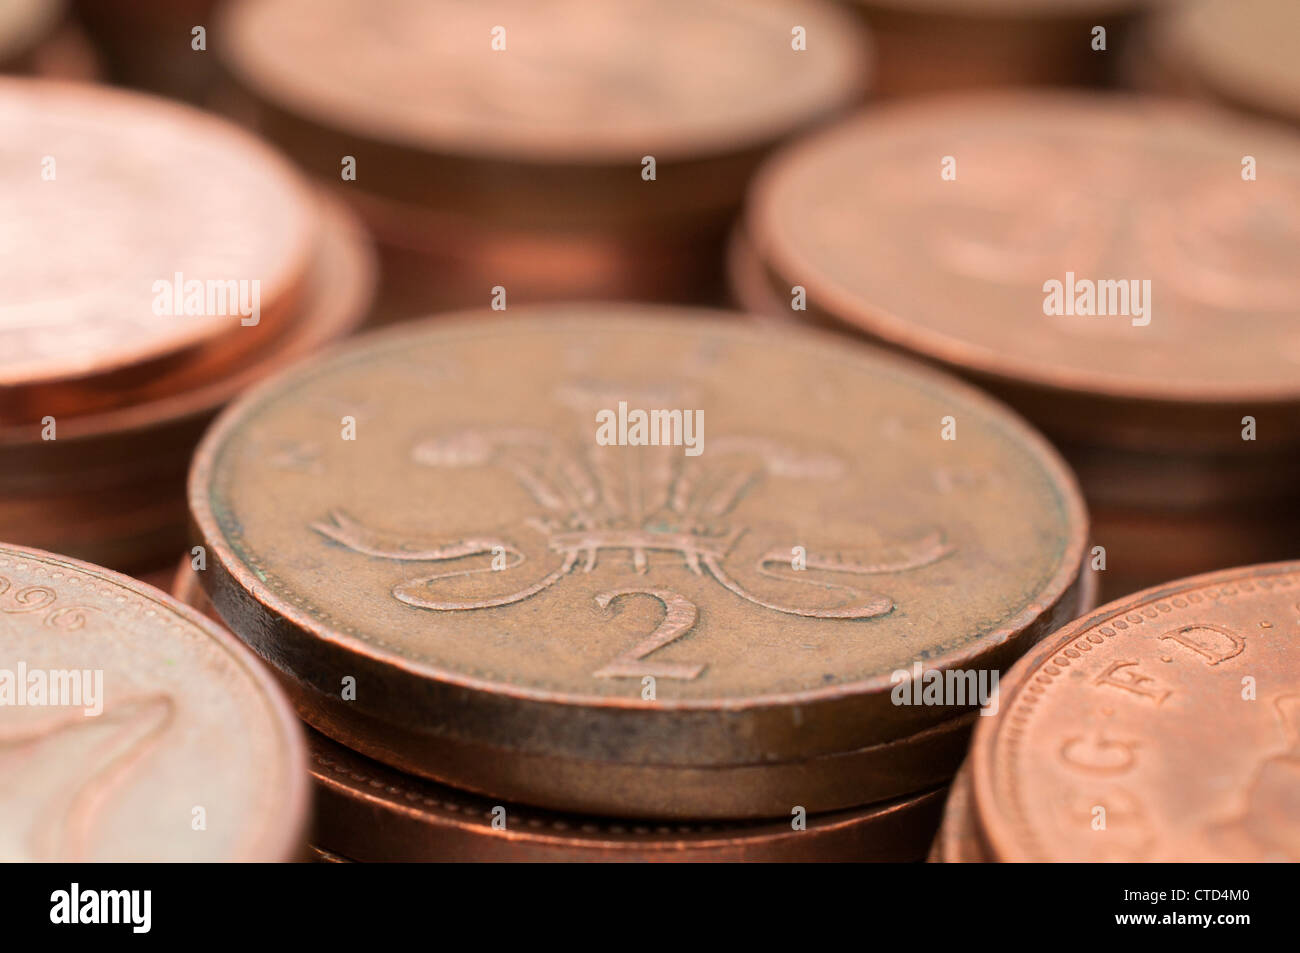 Copper two pence pieces in a pile, UK coins £ sterling - Stock Image